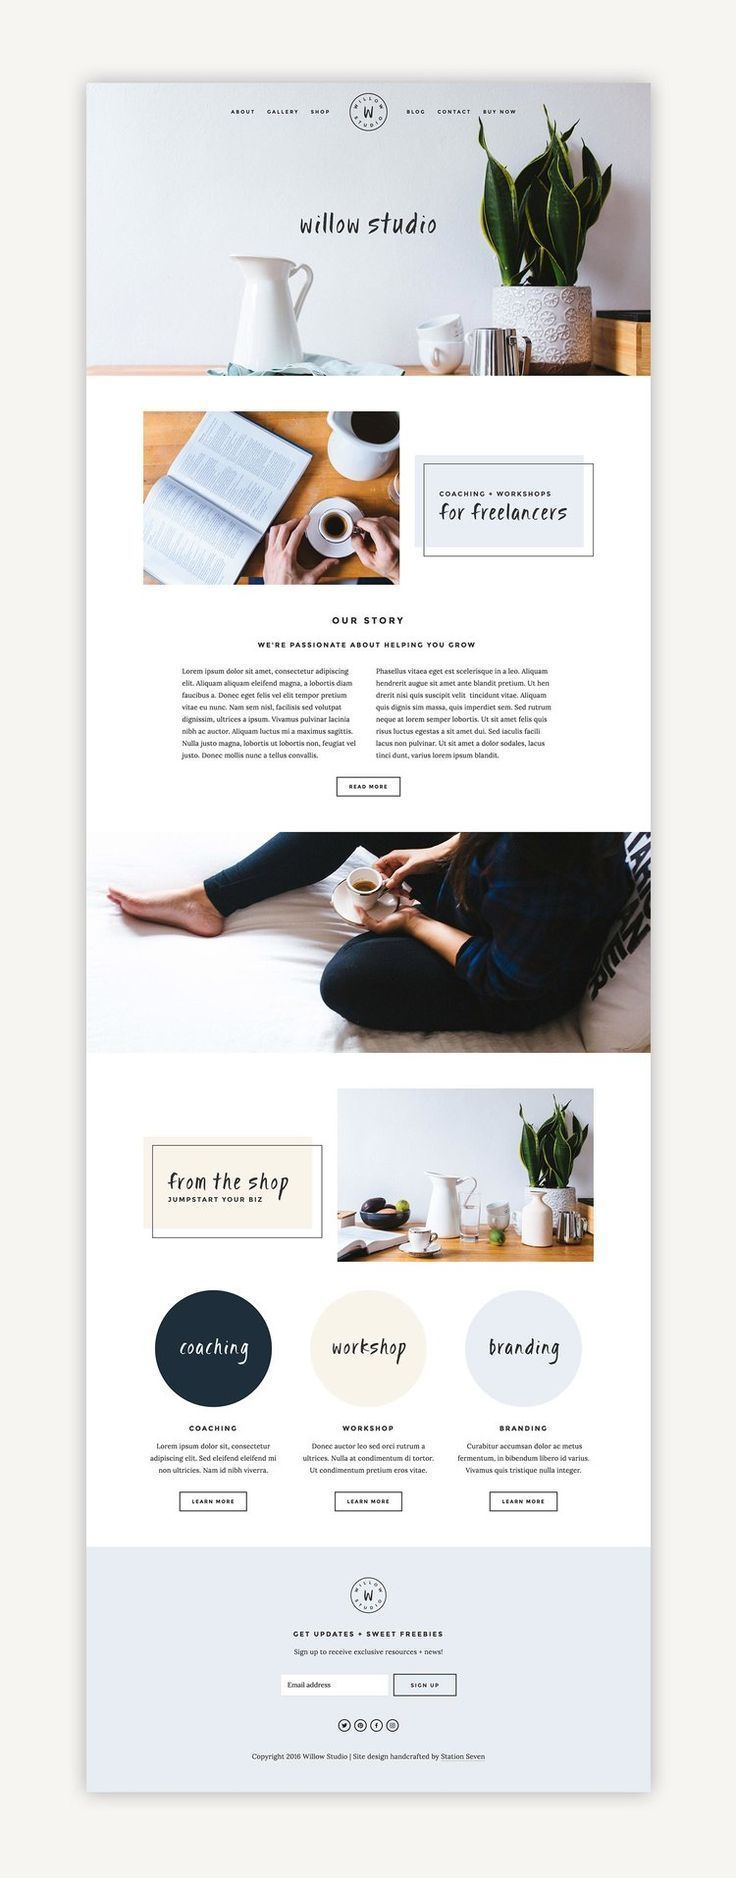 Willow Squarespace Kit — Station Seven: Squarespace Templates, WordPress Themes, and Free Reso